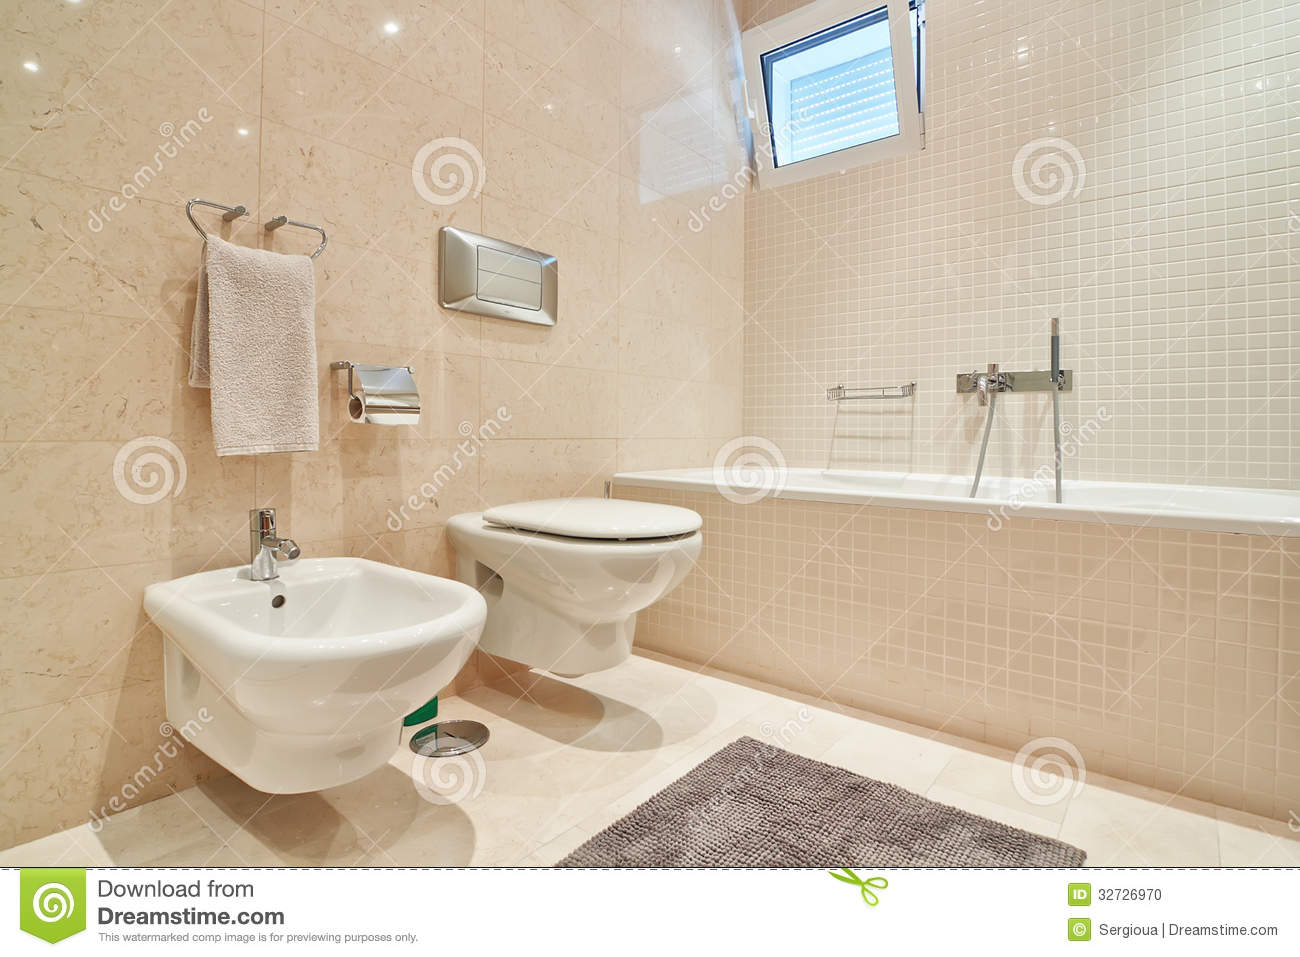 Modern Toilet With Ceramic Tiles And Bathroom Stock Photo Image 32726970